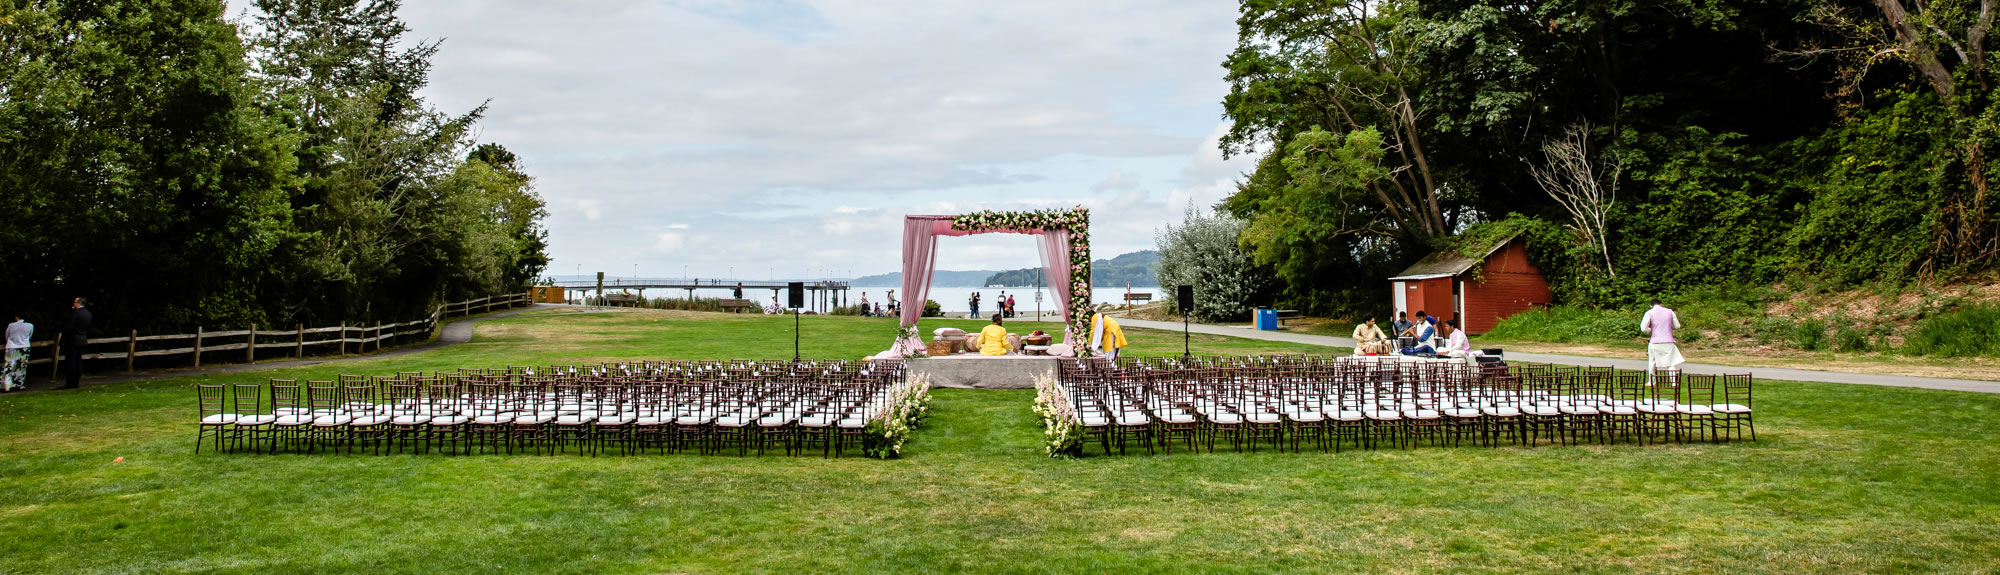 Meadow Waterfront Wedding Ceremony - Chairs Arch - Des Moines - James Thomas Long Photography